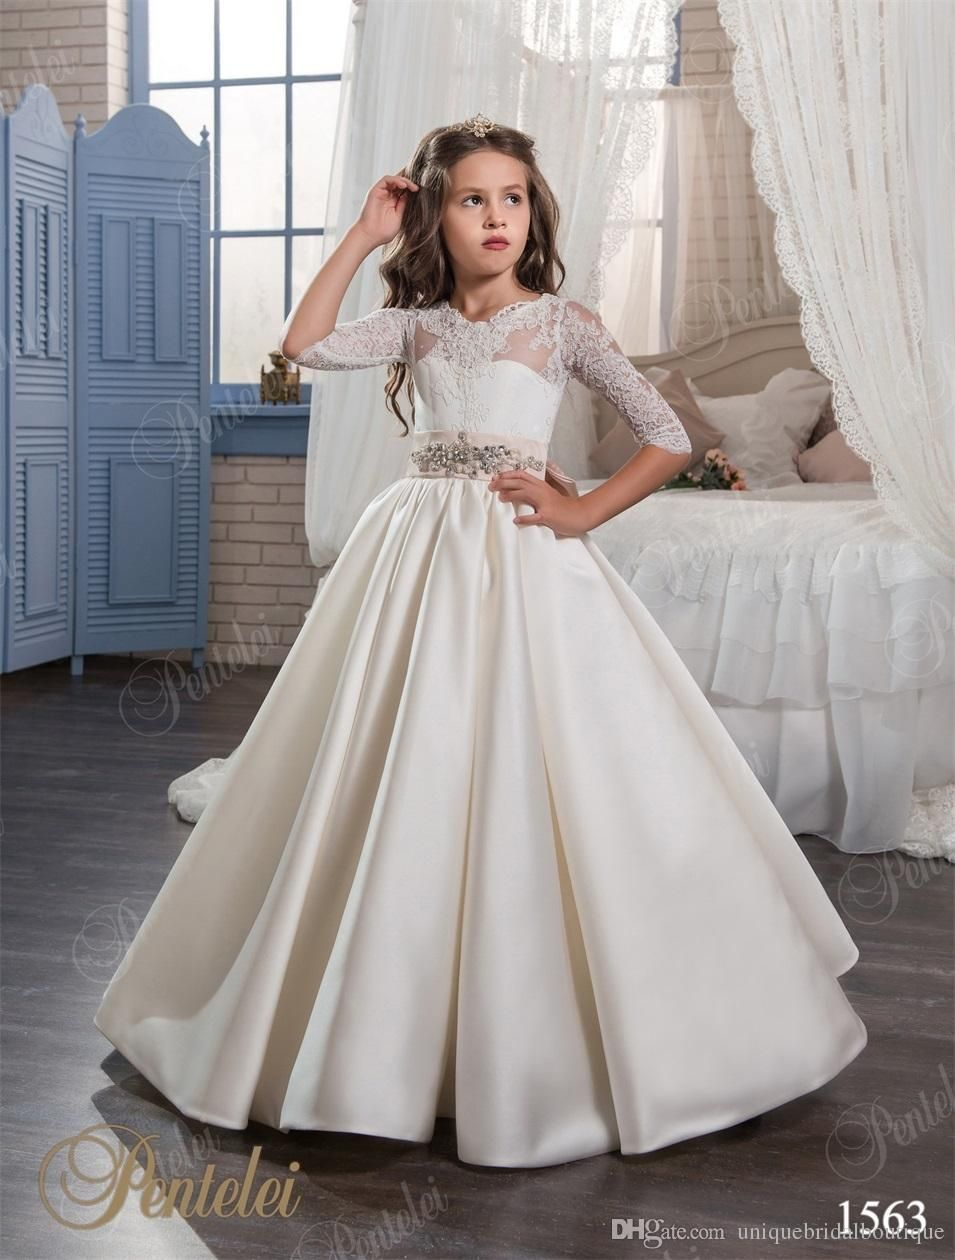 2017 vintage girls bridesmaid dresses with 34 long sleeves and 2017 vintage girls bridesmaid dresses with 34 long sleeves and lace up back soft ombrellifo Image collections